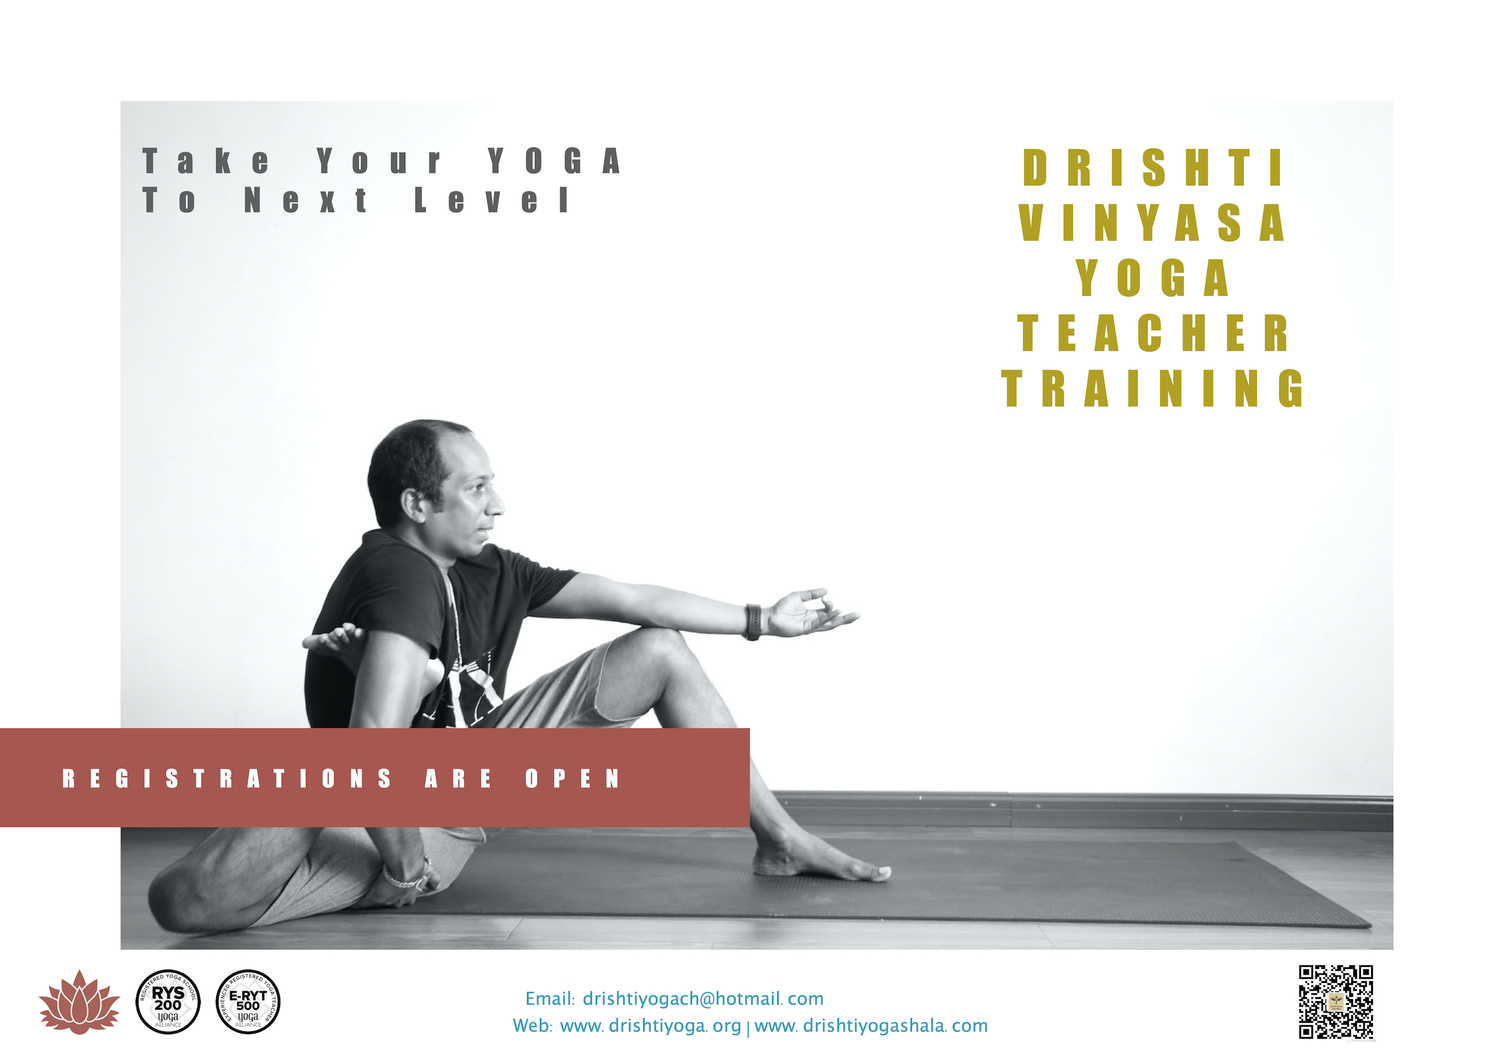 Drishti Vinyasa Yoga Teacher Training - Aug-Nov 2020 - Shanghai, China 9-p1.jpg